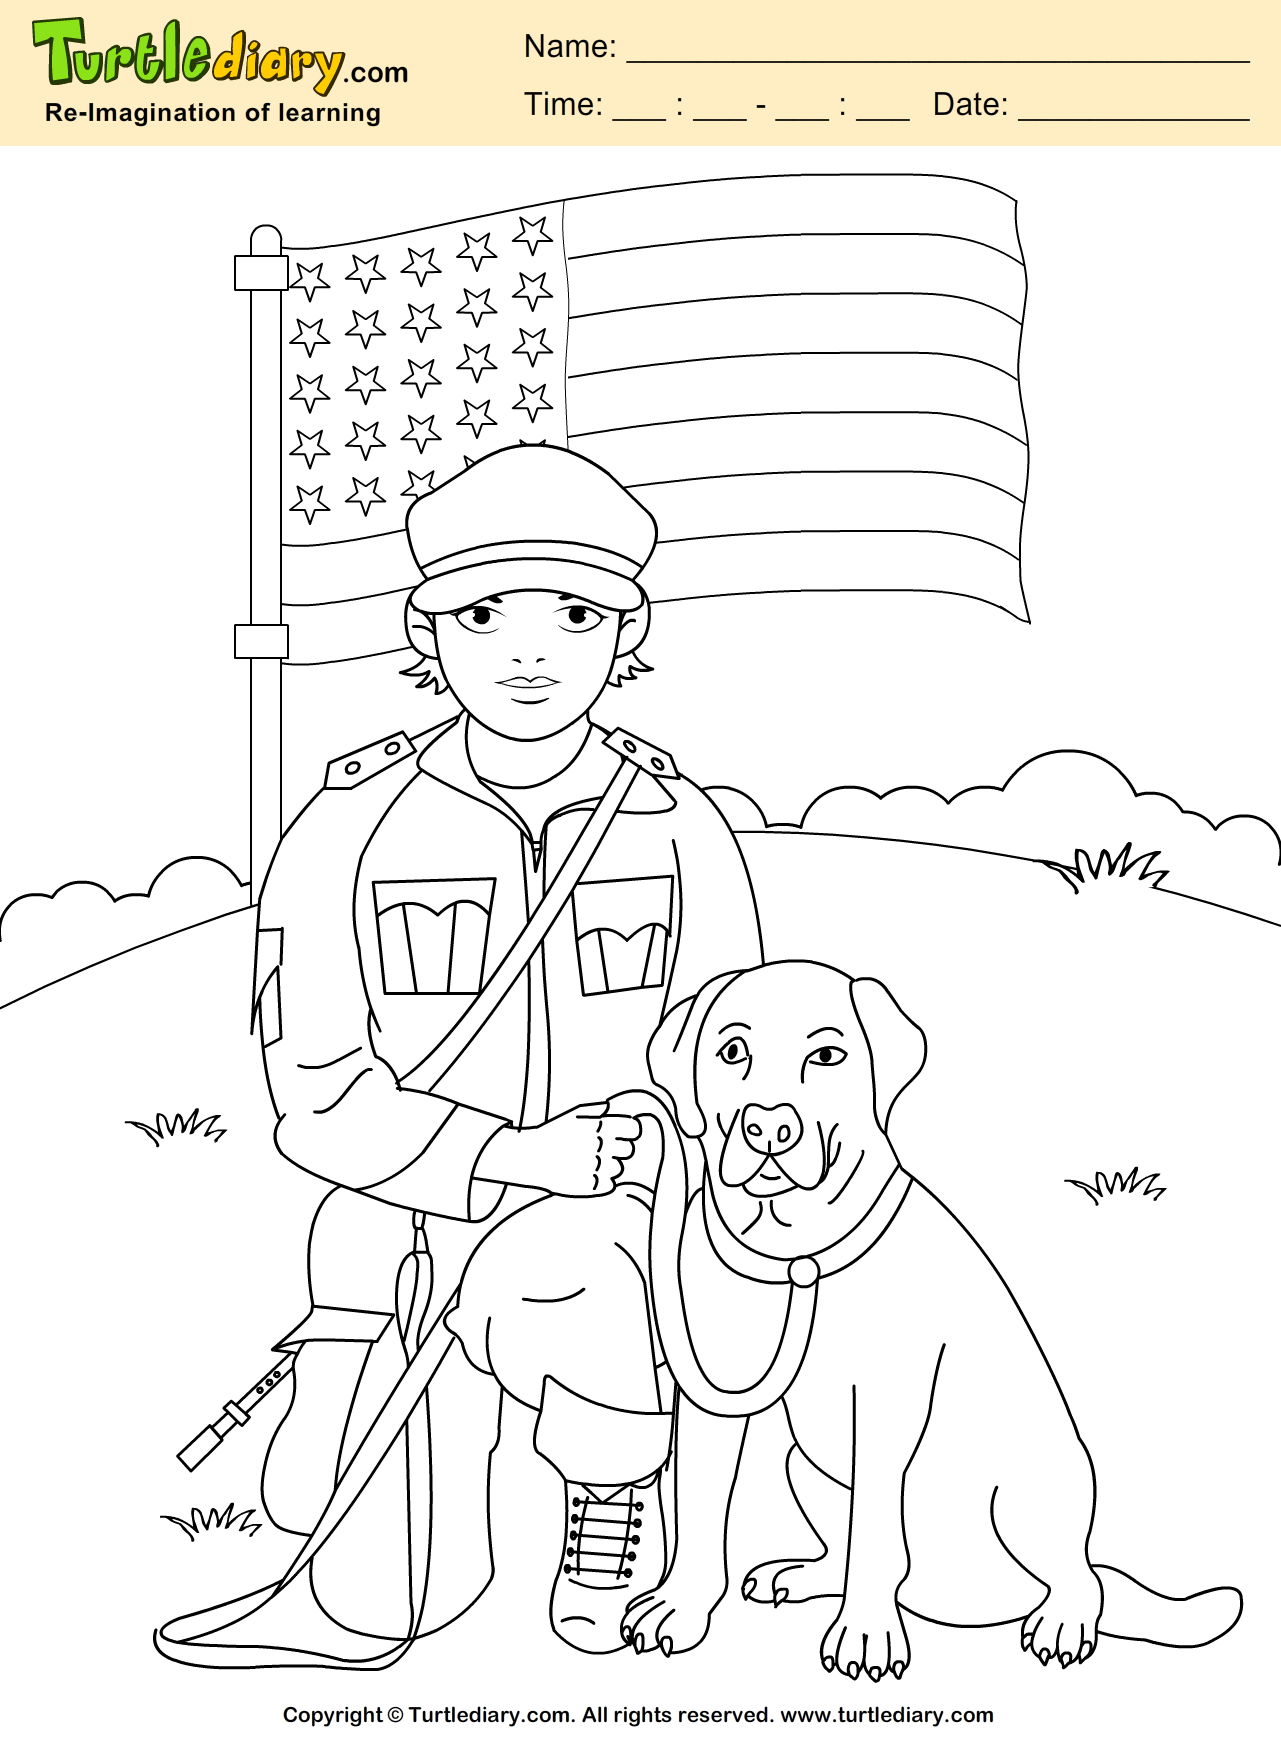 Sol R With Dog Coloring Sheet